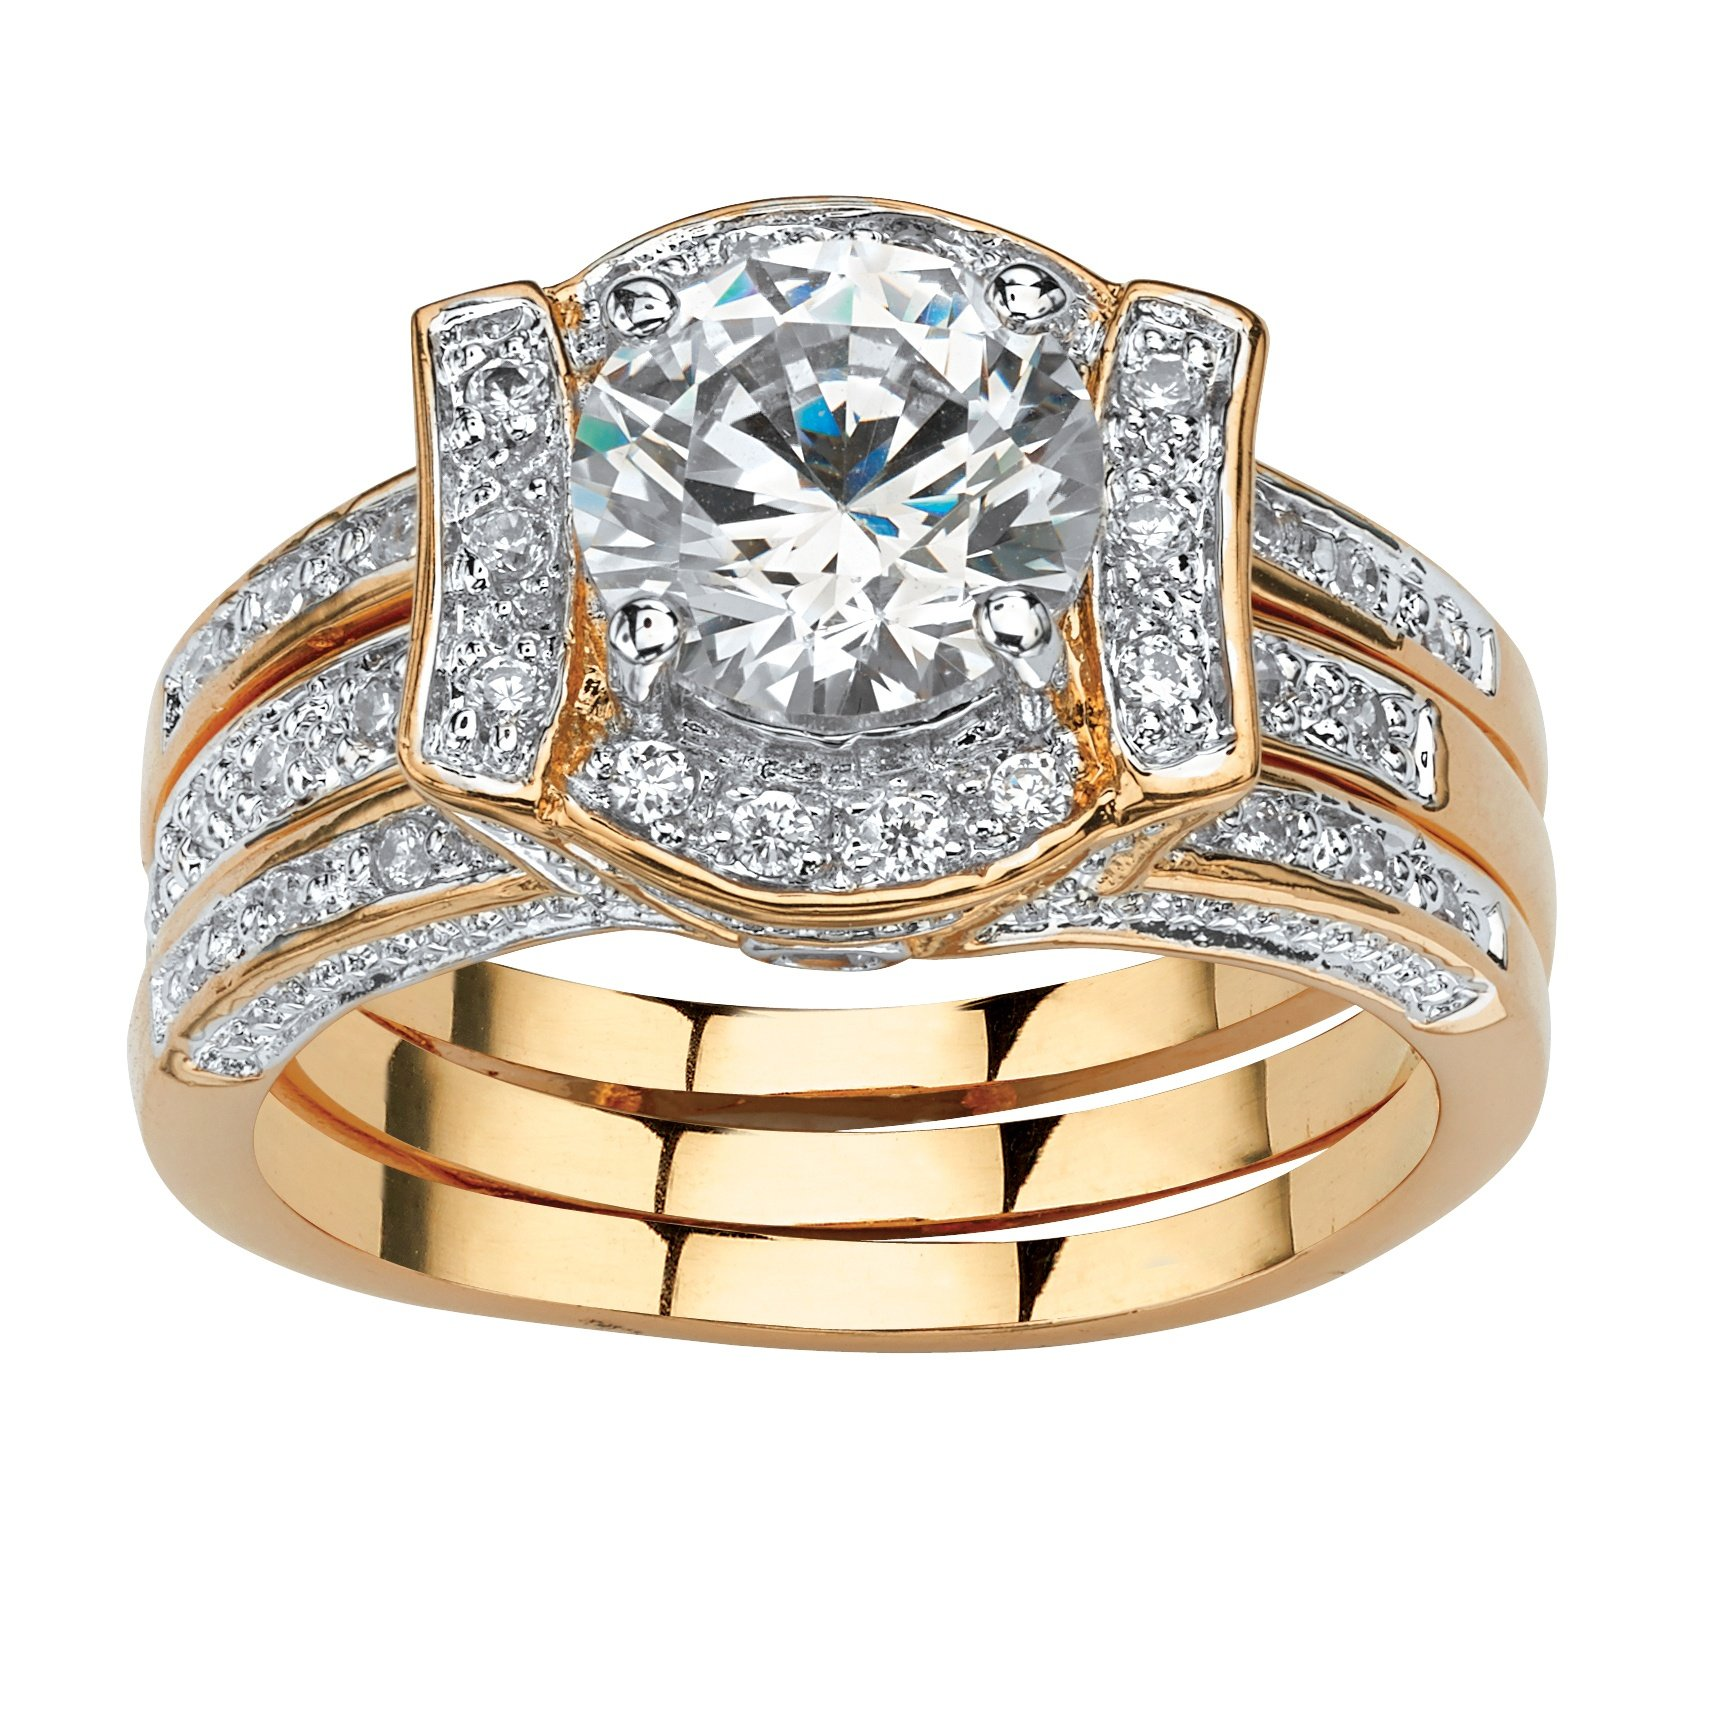 Palm Beach Jewelry 18K Yellow Gold-Plated Round Cubic Zirconia Vintage-Style Jacket Bridal Ring Set Size 5